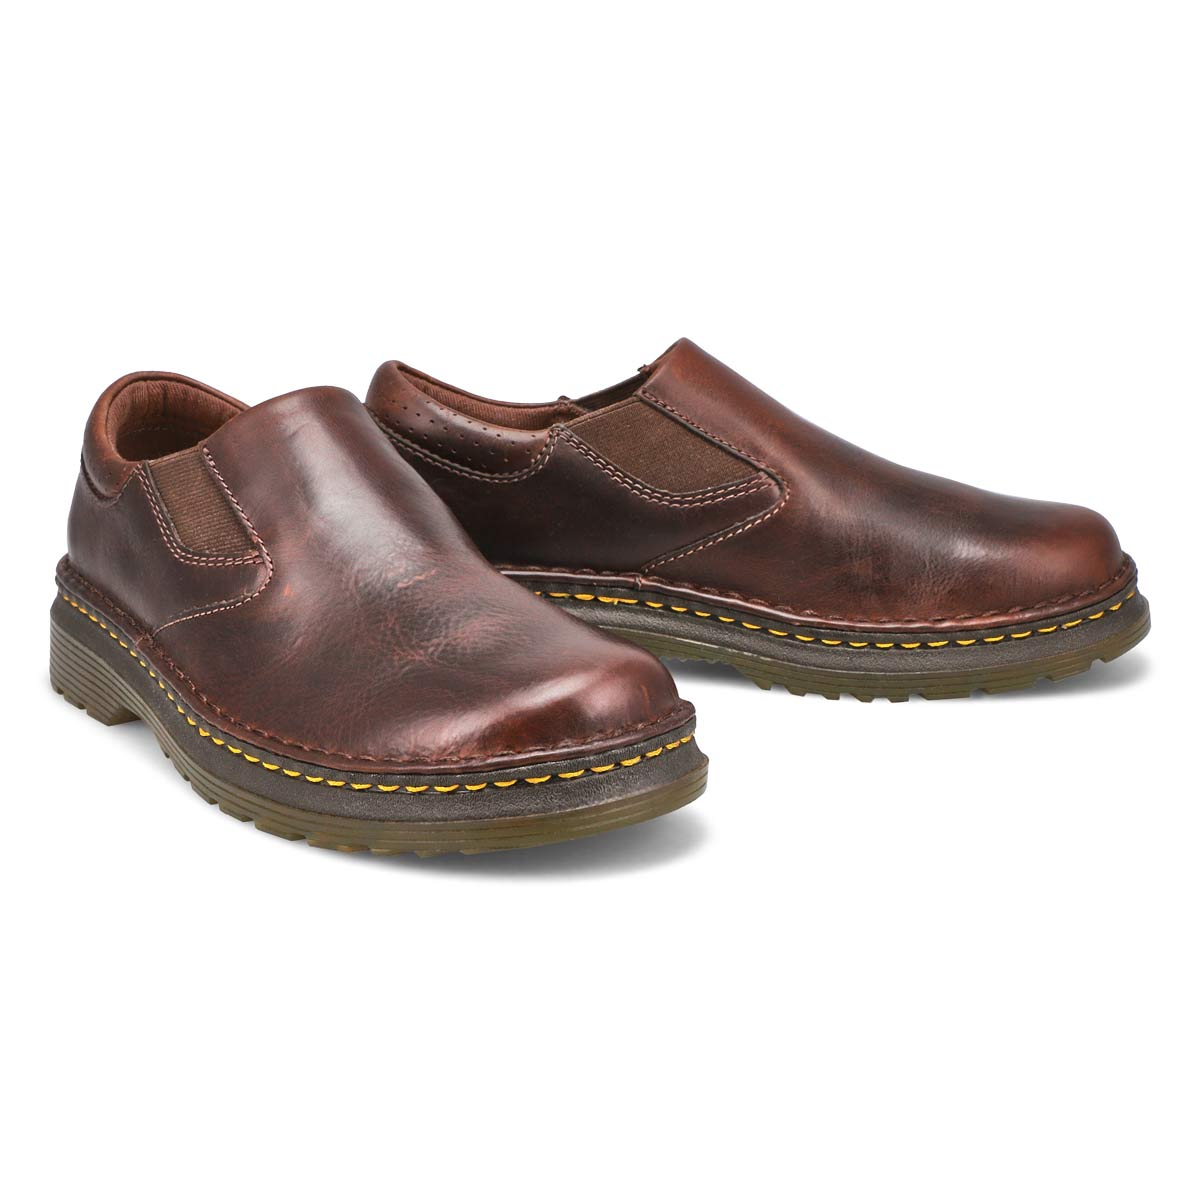 Mns Orson dk brown plain toe slip on